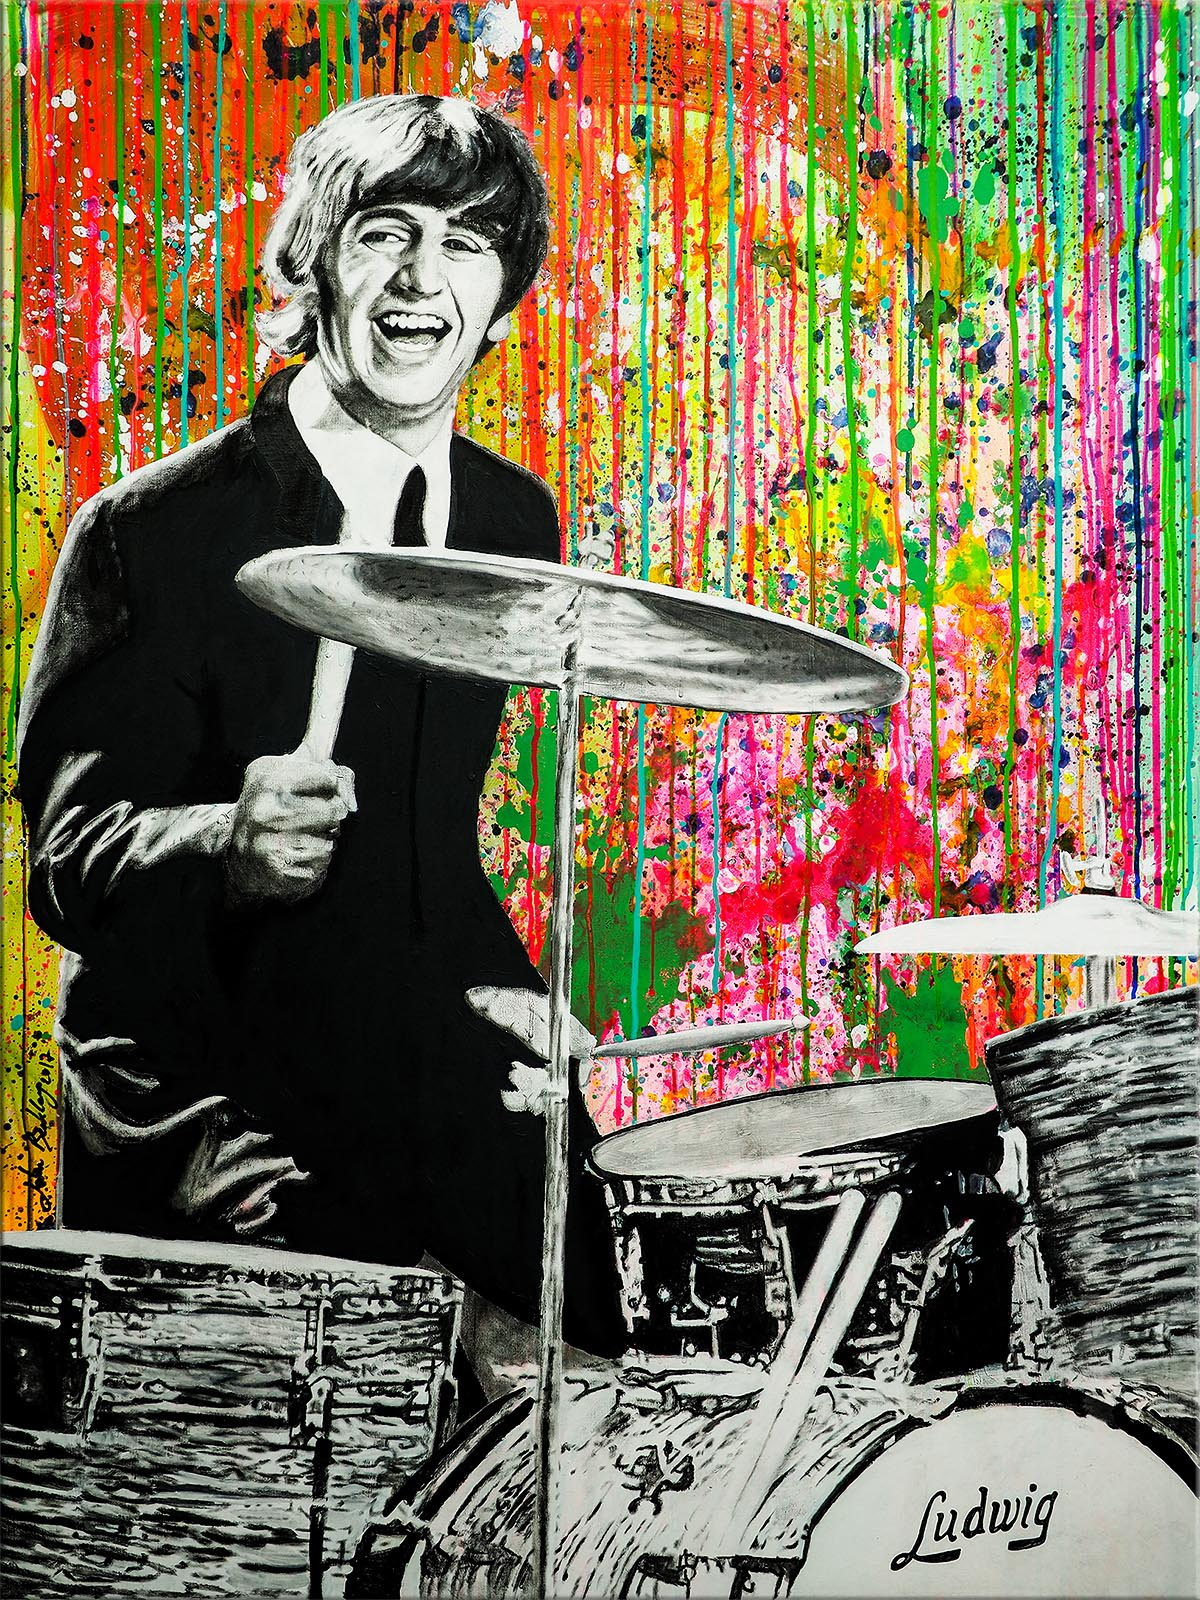 Beatles Pop Art Ringo Starr Painting